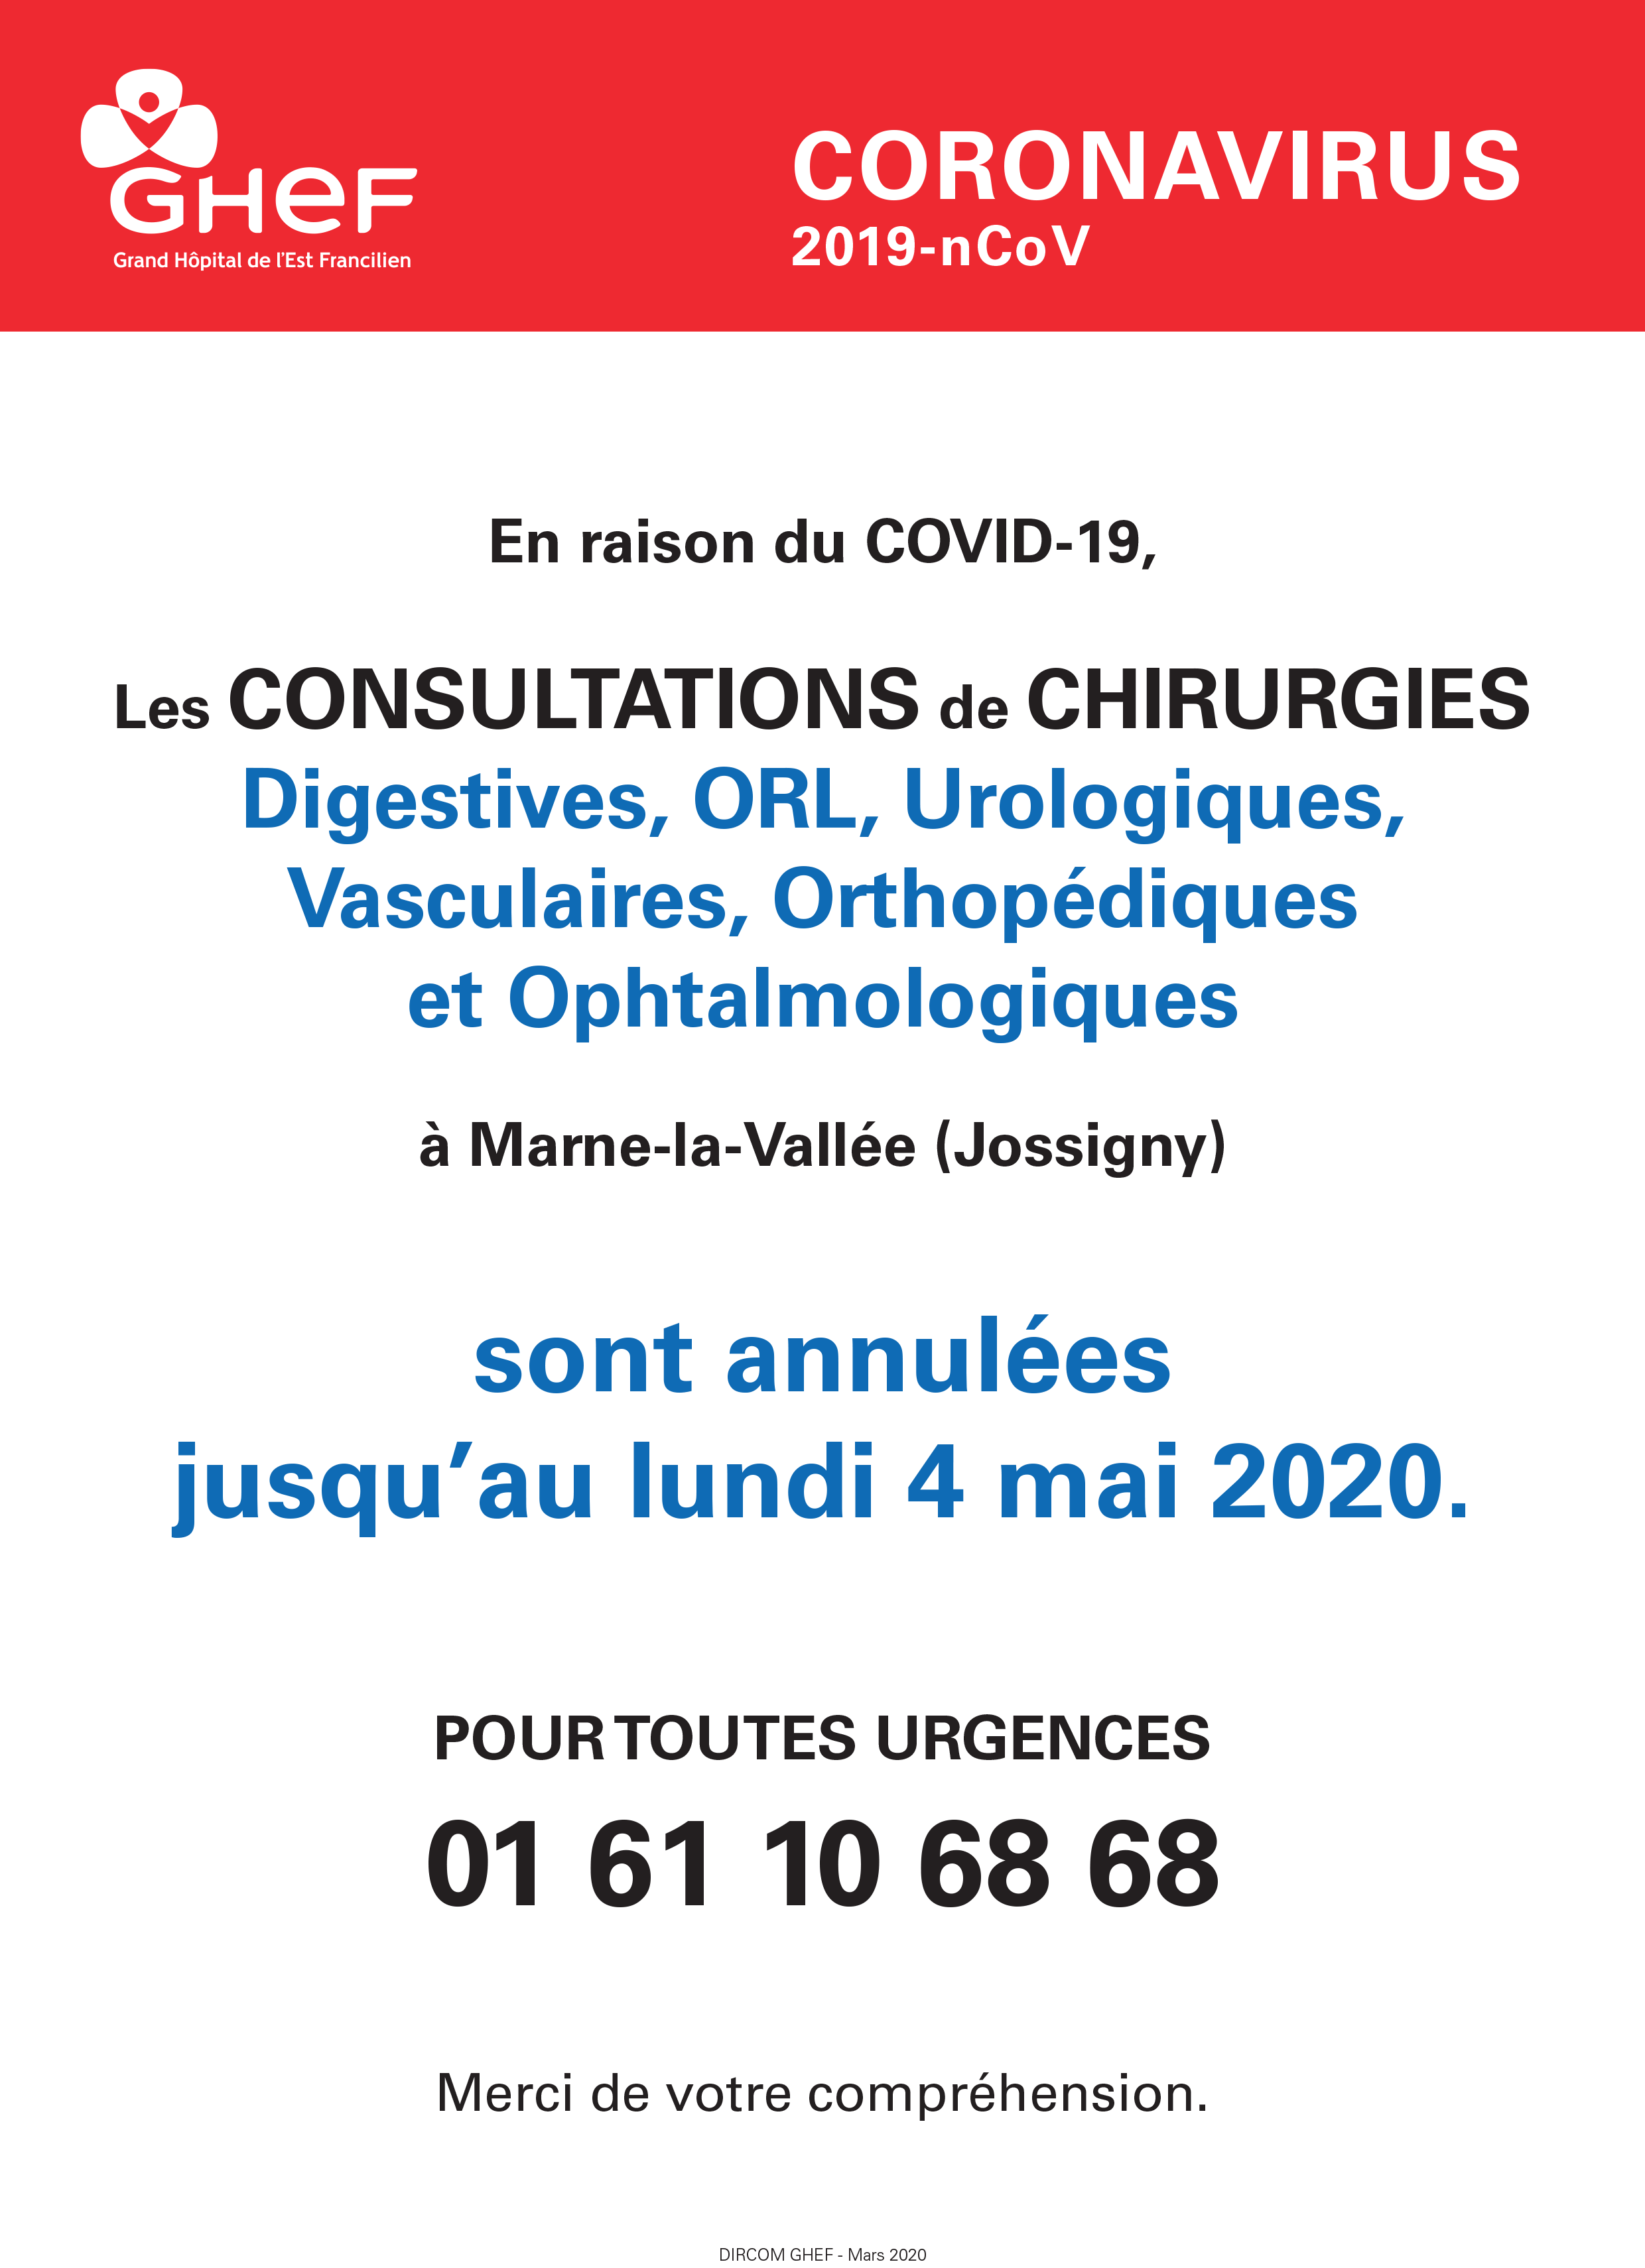 GHEF annulation Consultations Chirurgie Marne-la-Vallee